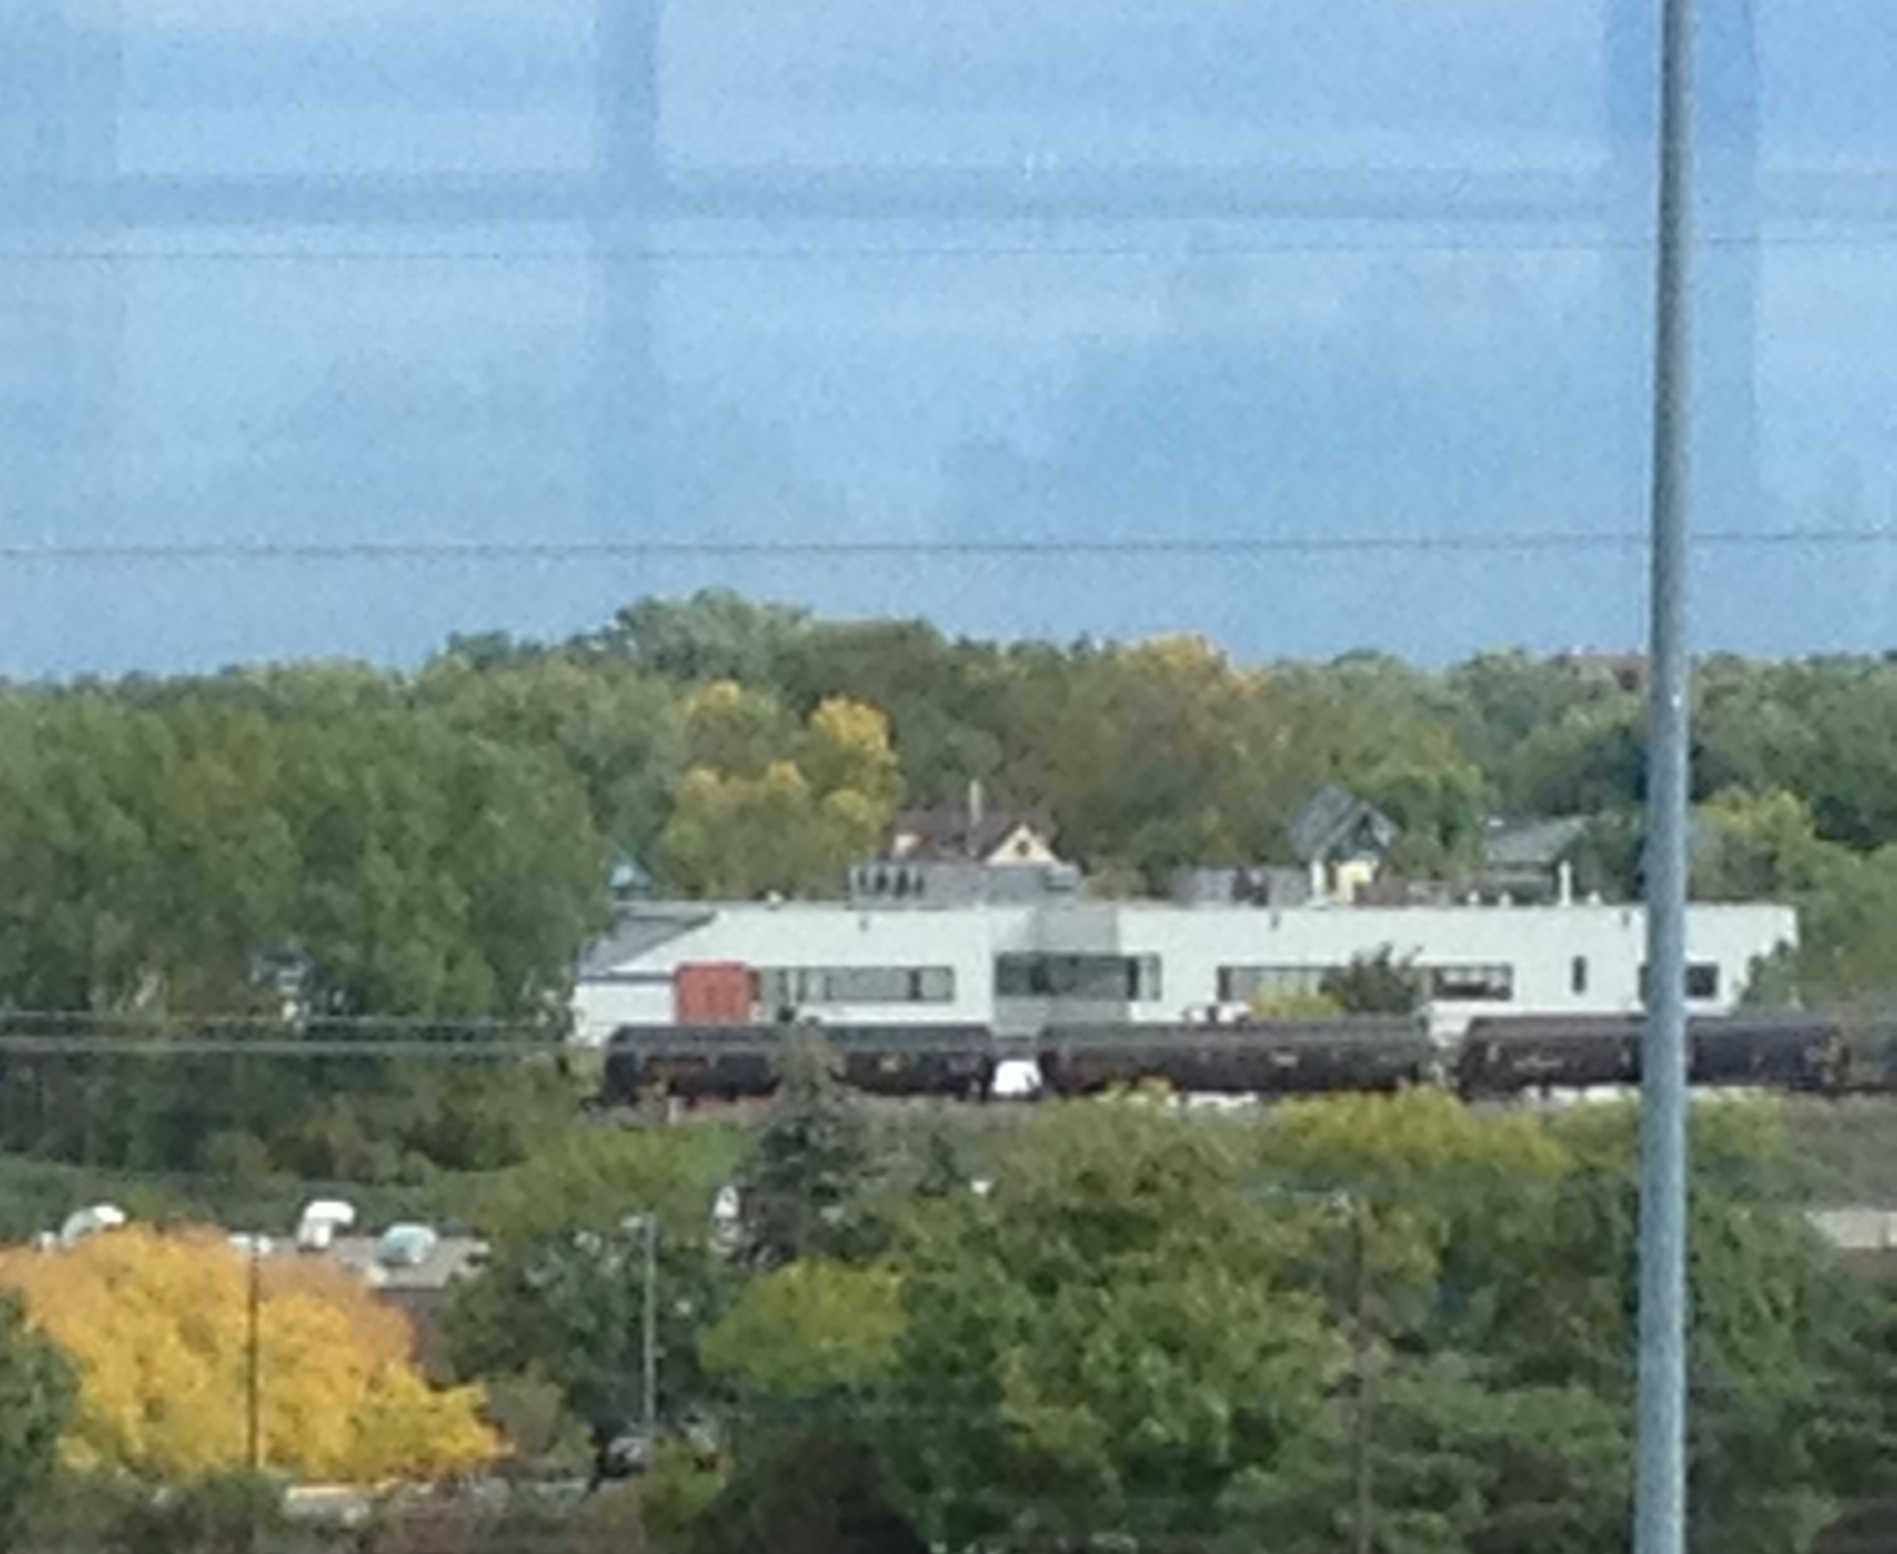 Caption: An oil train waits for traffic to clear in St. Paul., Credit: Melissa Townsend